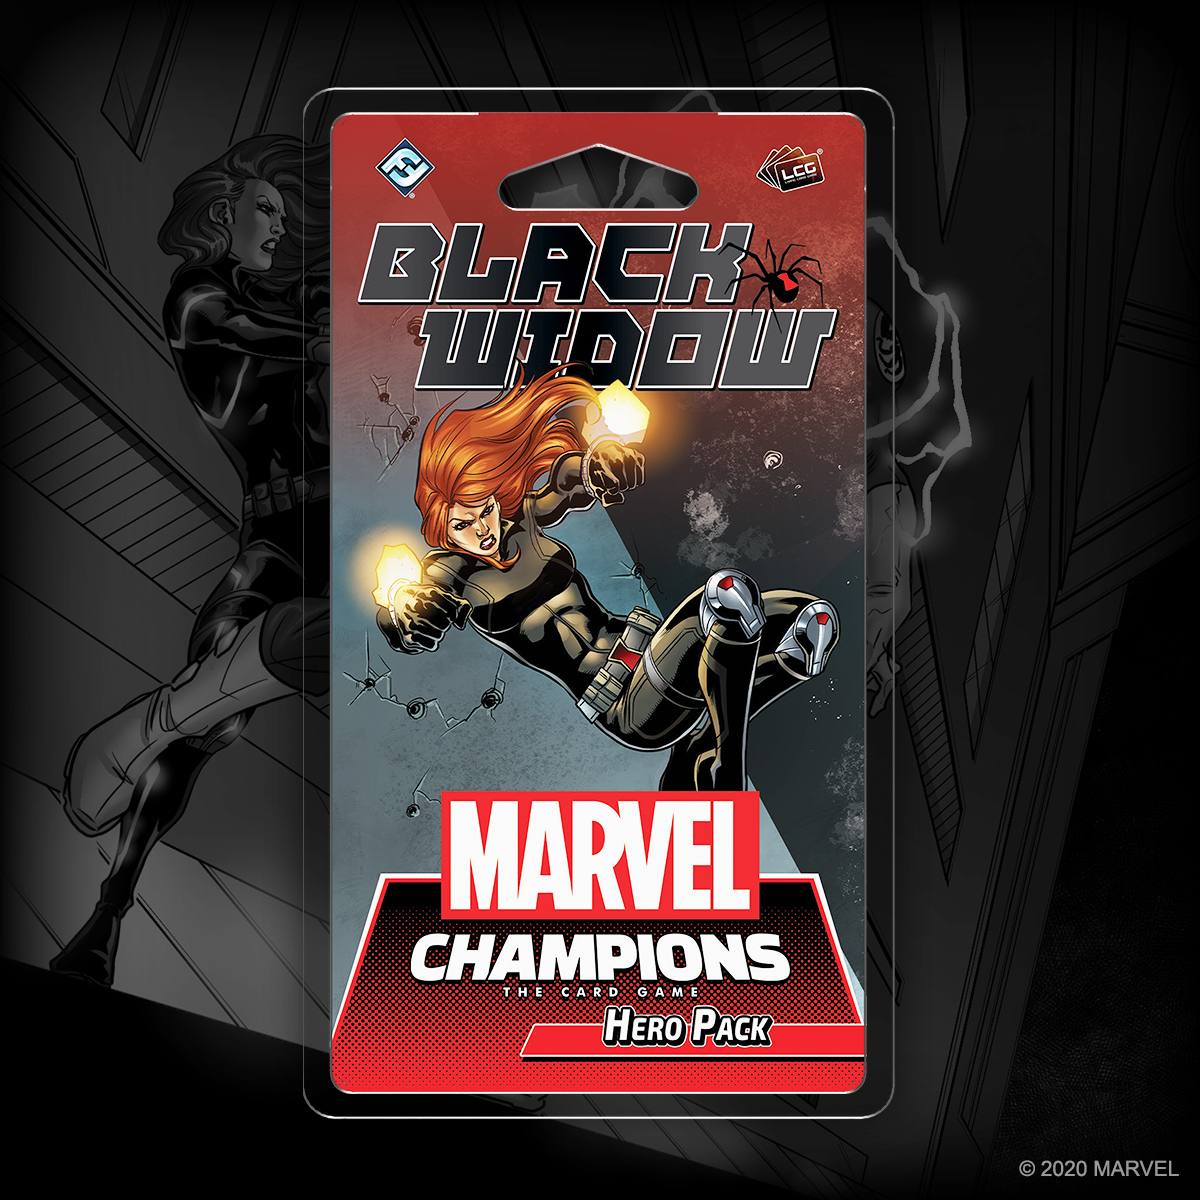 test Twitter Media - The next hero arrives for Marvel Champions: The Card Game! US retailers will be stocking the Black Widow Hero Pack on June 5. #MarvelChampions #LCG https://t.co/SkimNW3CgC